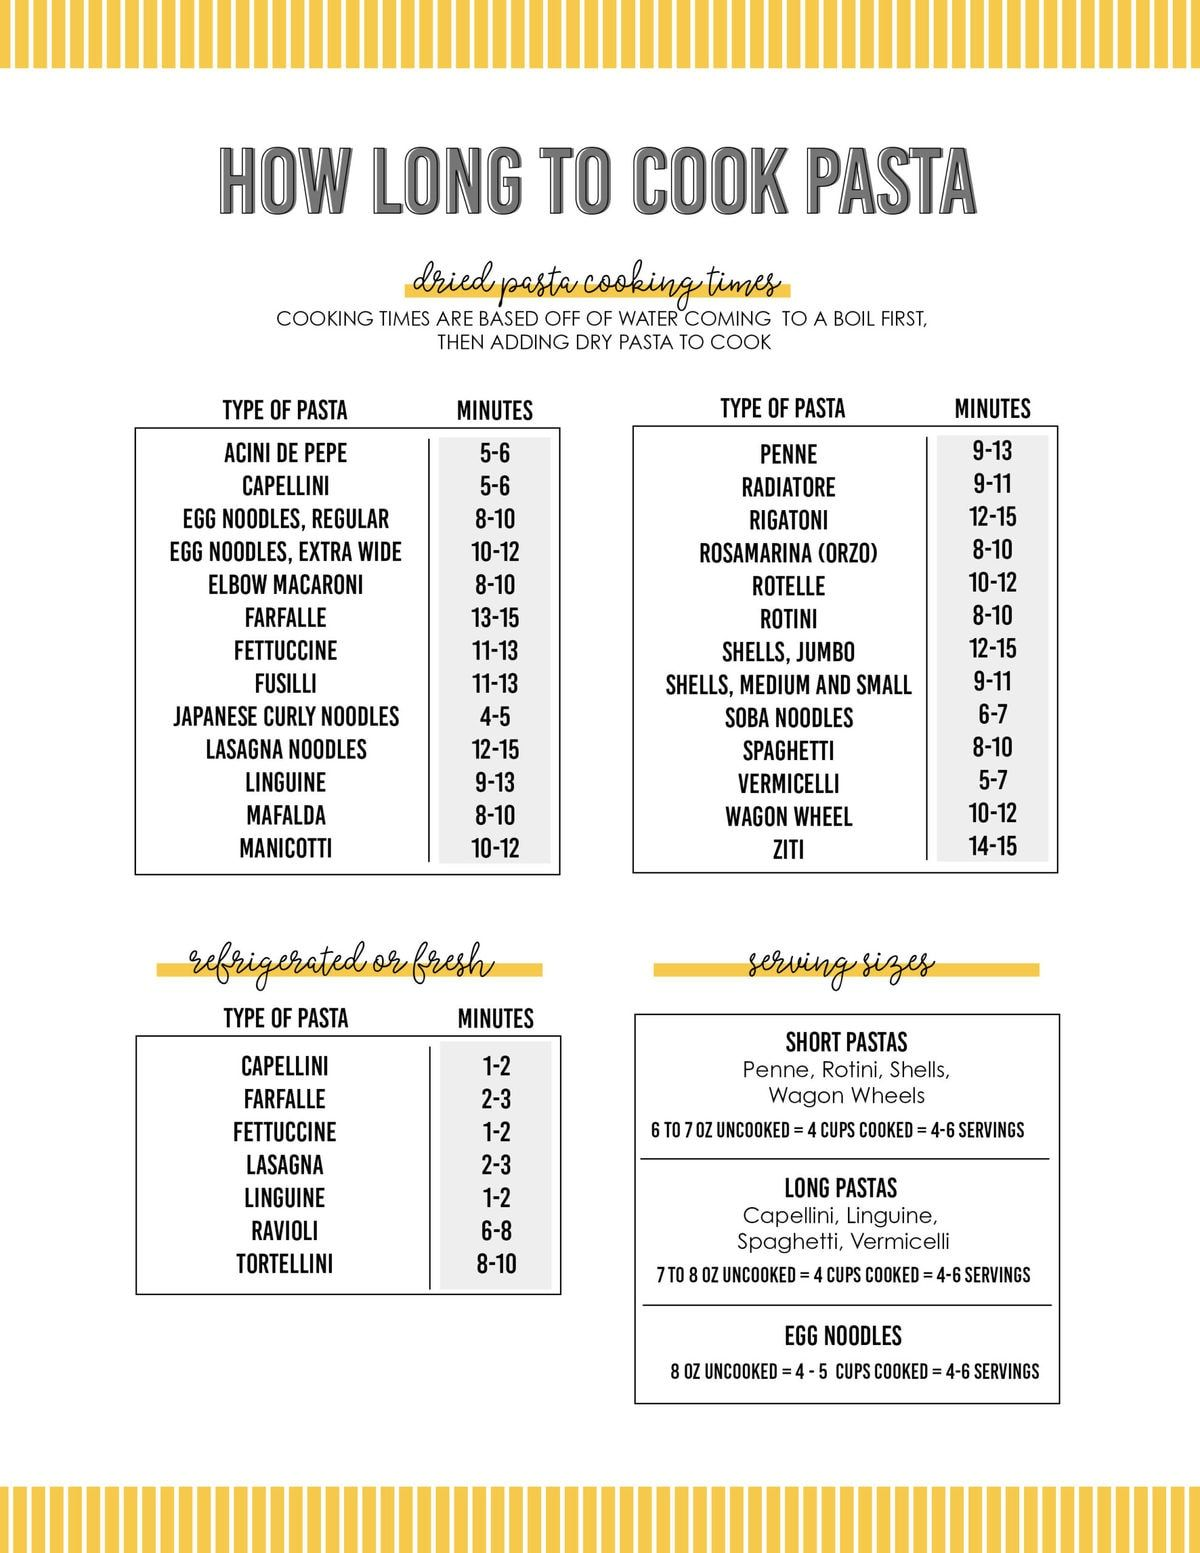 How To Cook Pasta The Complete Guide Lil Luna In 2020 How To Cook Pasta Drying Pasta Family Recipe Book